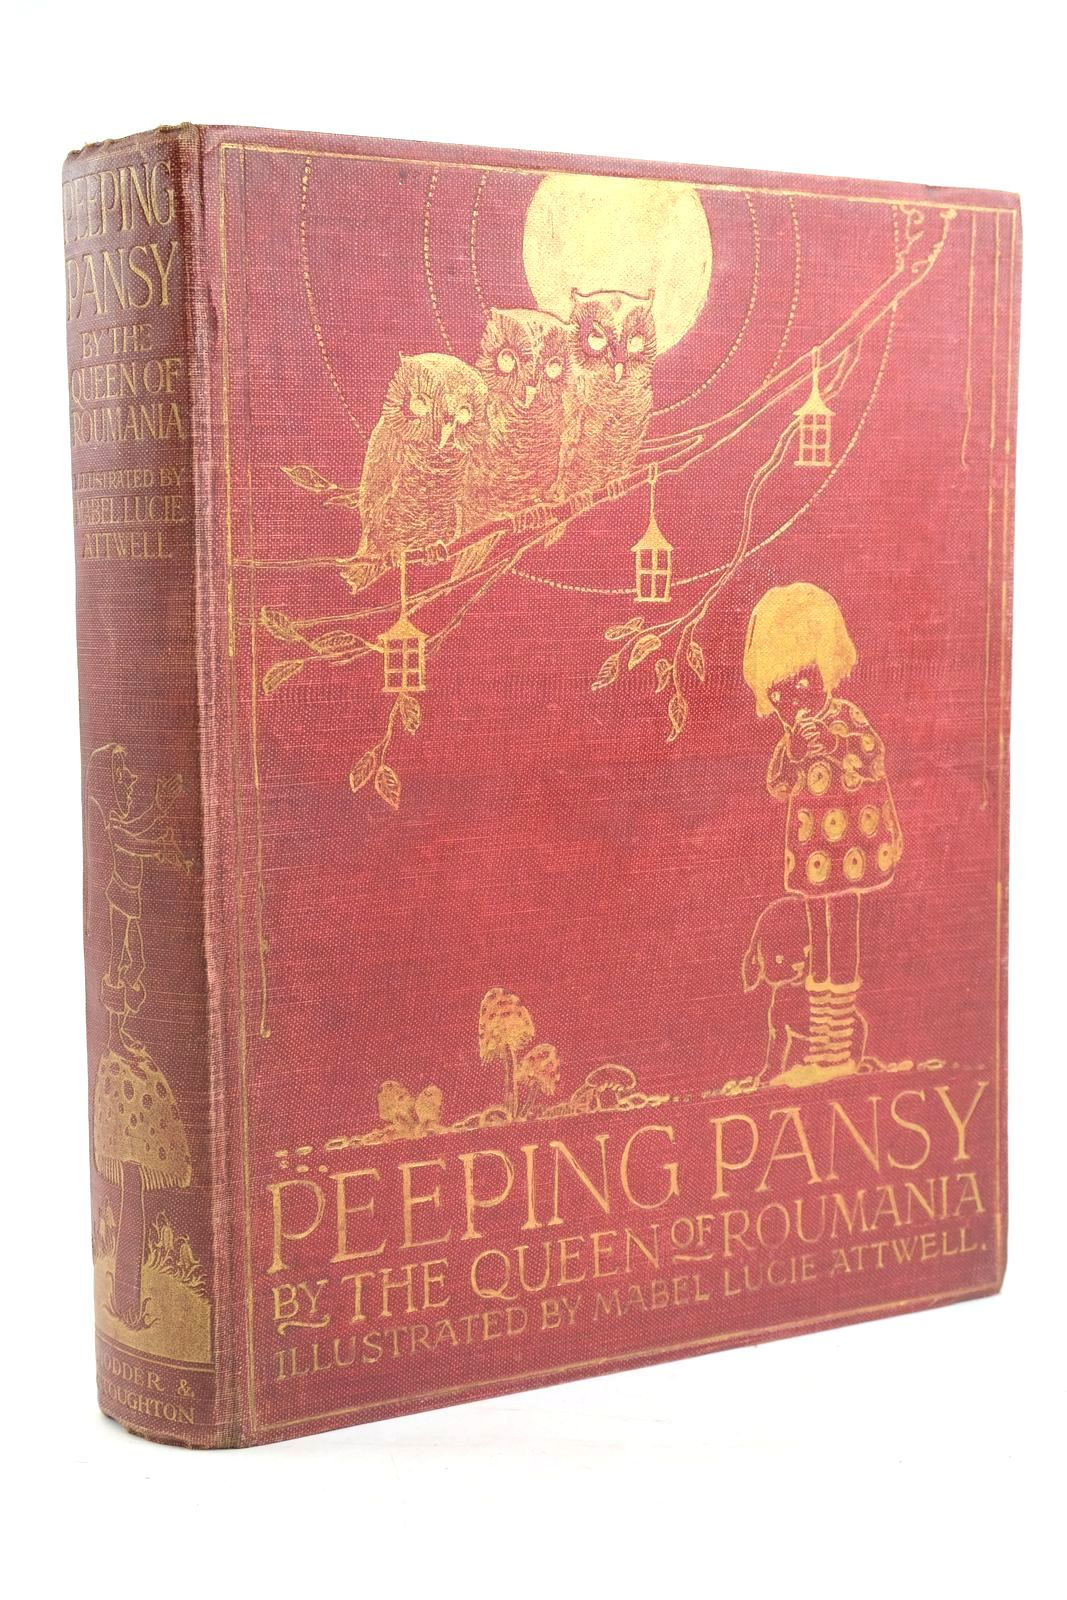 Photo of PEEPING PANSY written by Roumania, Marie Queen Of illustrated by Attwell, Mabel Lucie published by Hodder & Stoughton (STOCK CODE: 1319927)  for sale by Stella & Rose's Books